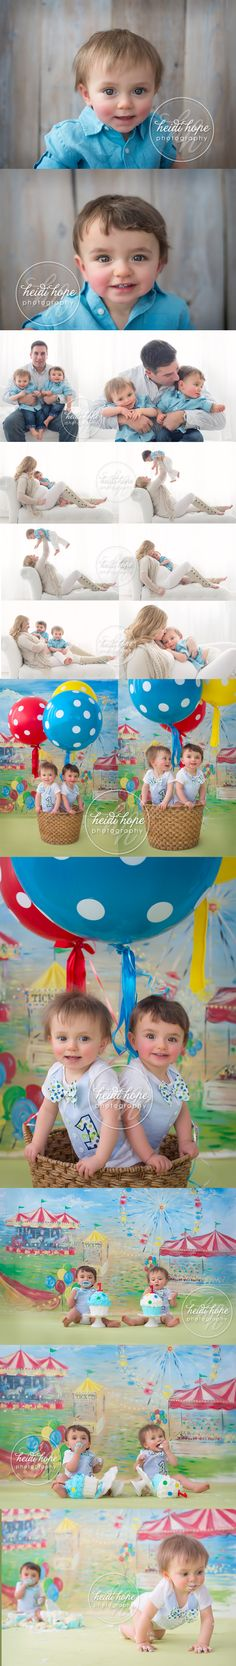 A vintage carnival cakesmash for super cute twin boys along with maternity portraits of mom! #cakesmash #twins